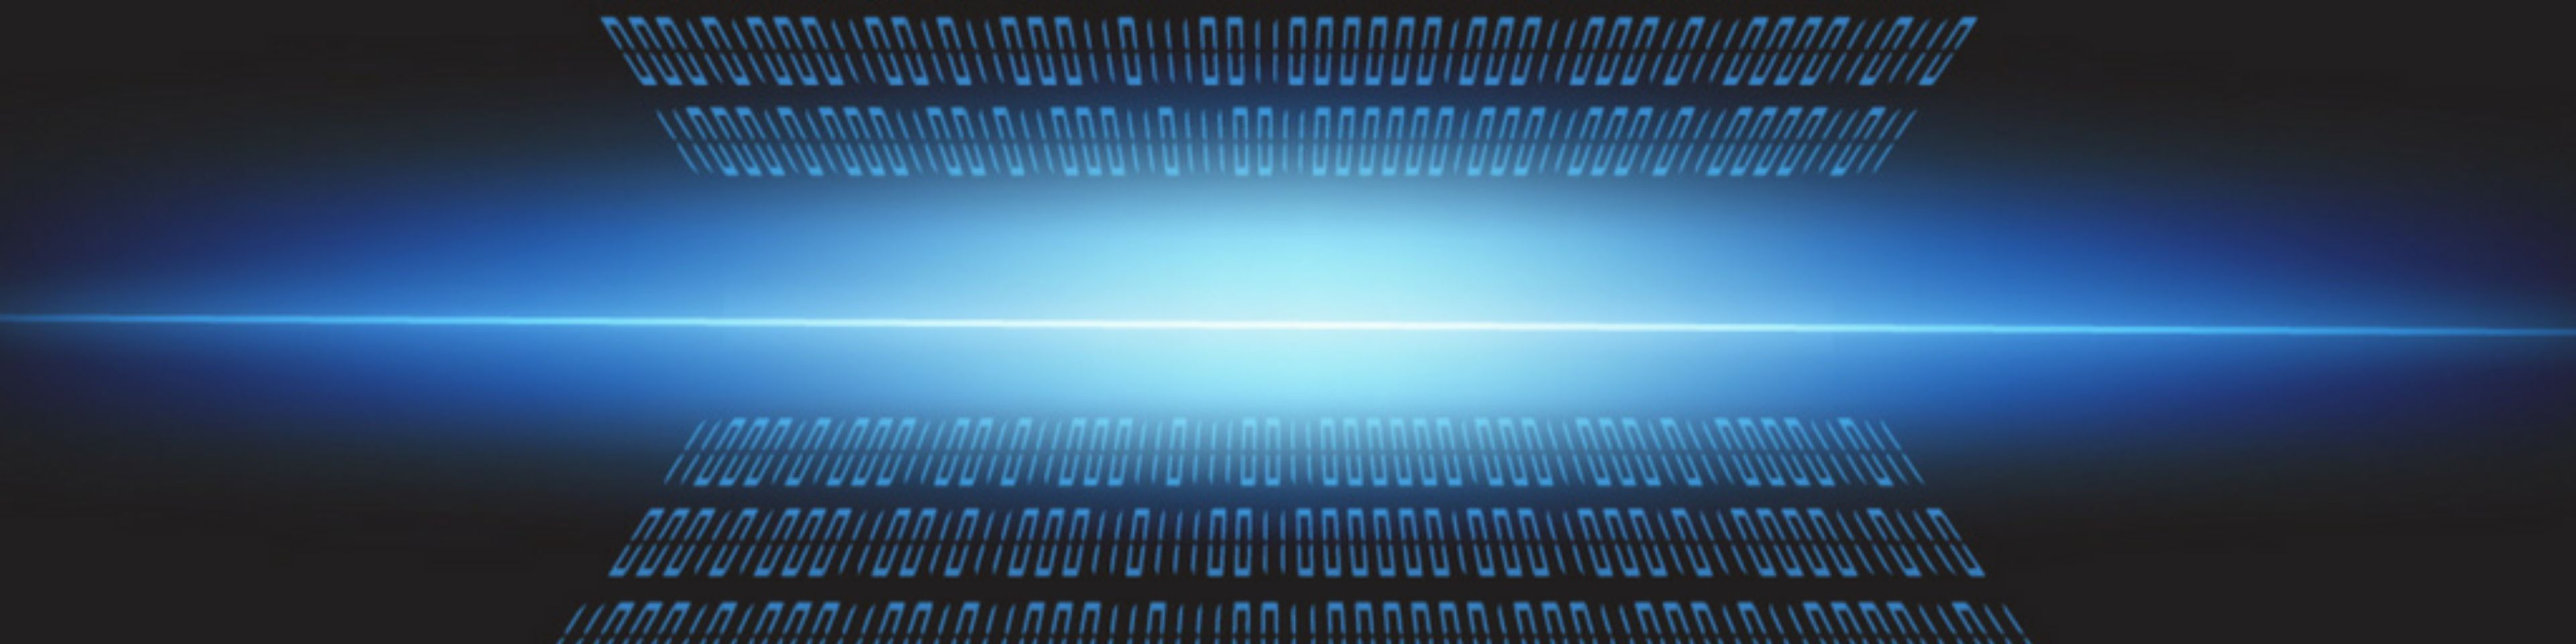 Kleos-data-backup-recovery-law-firms